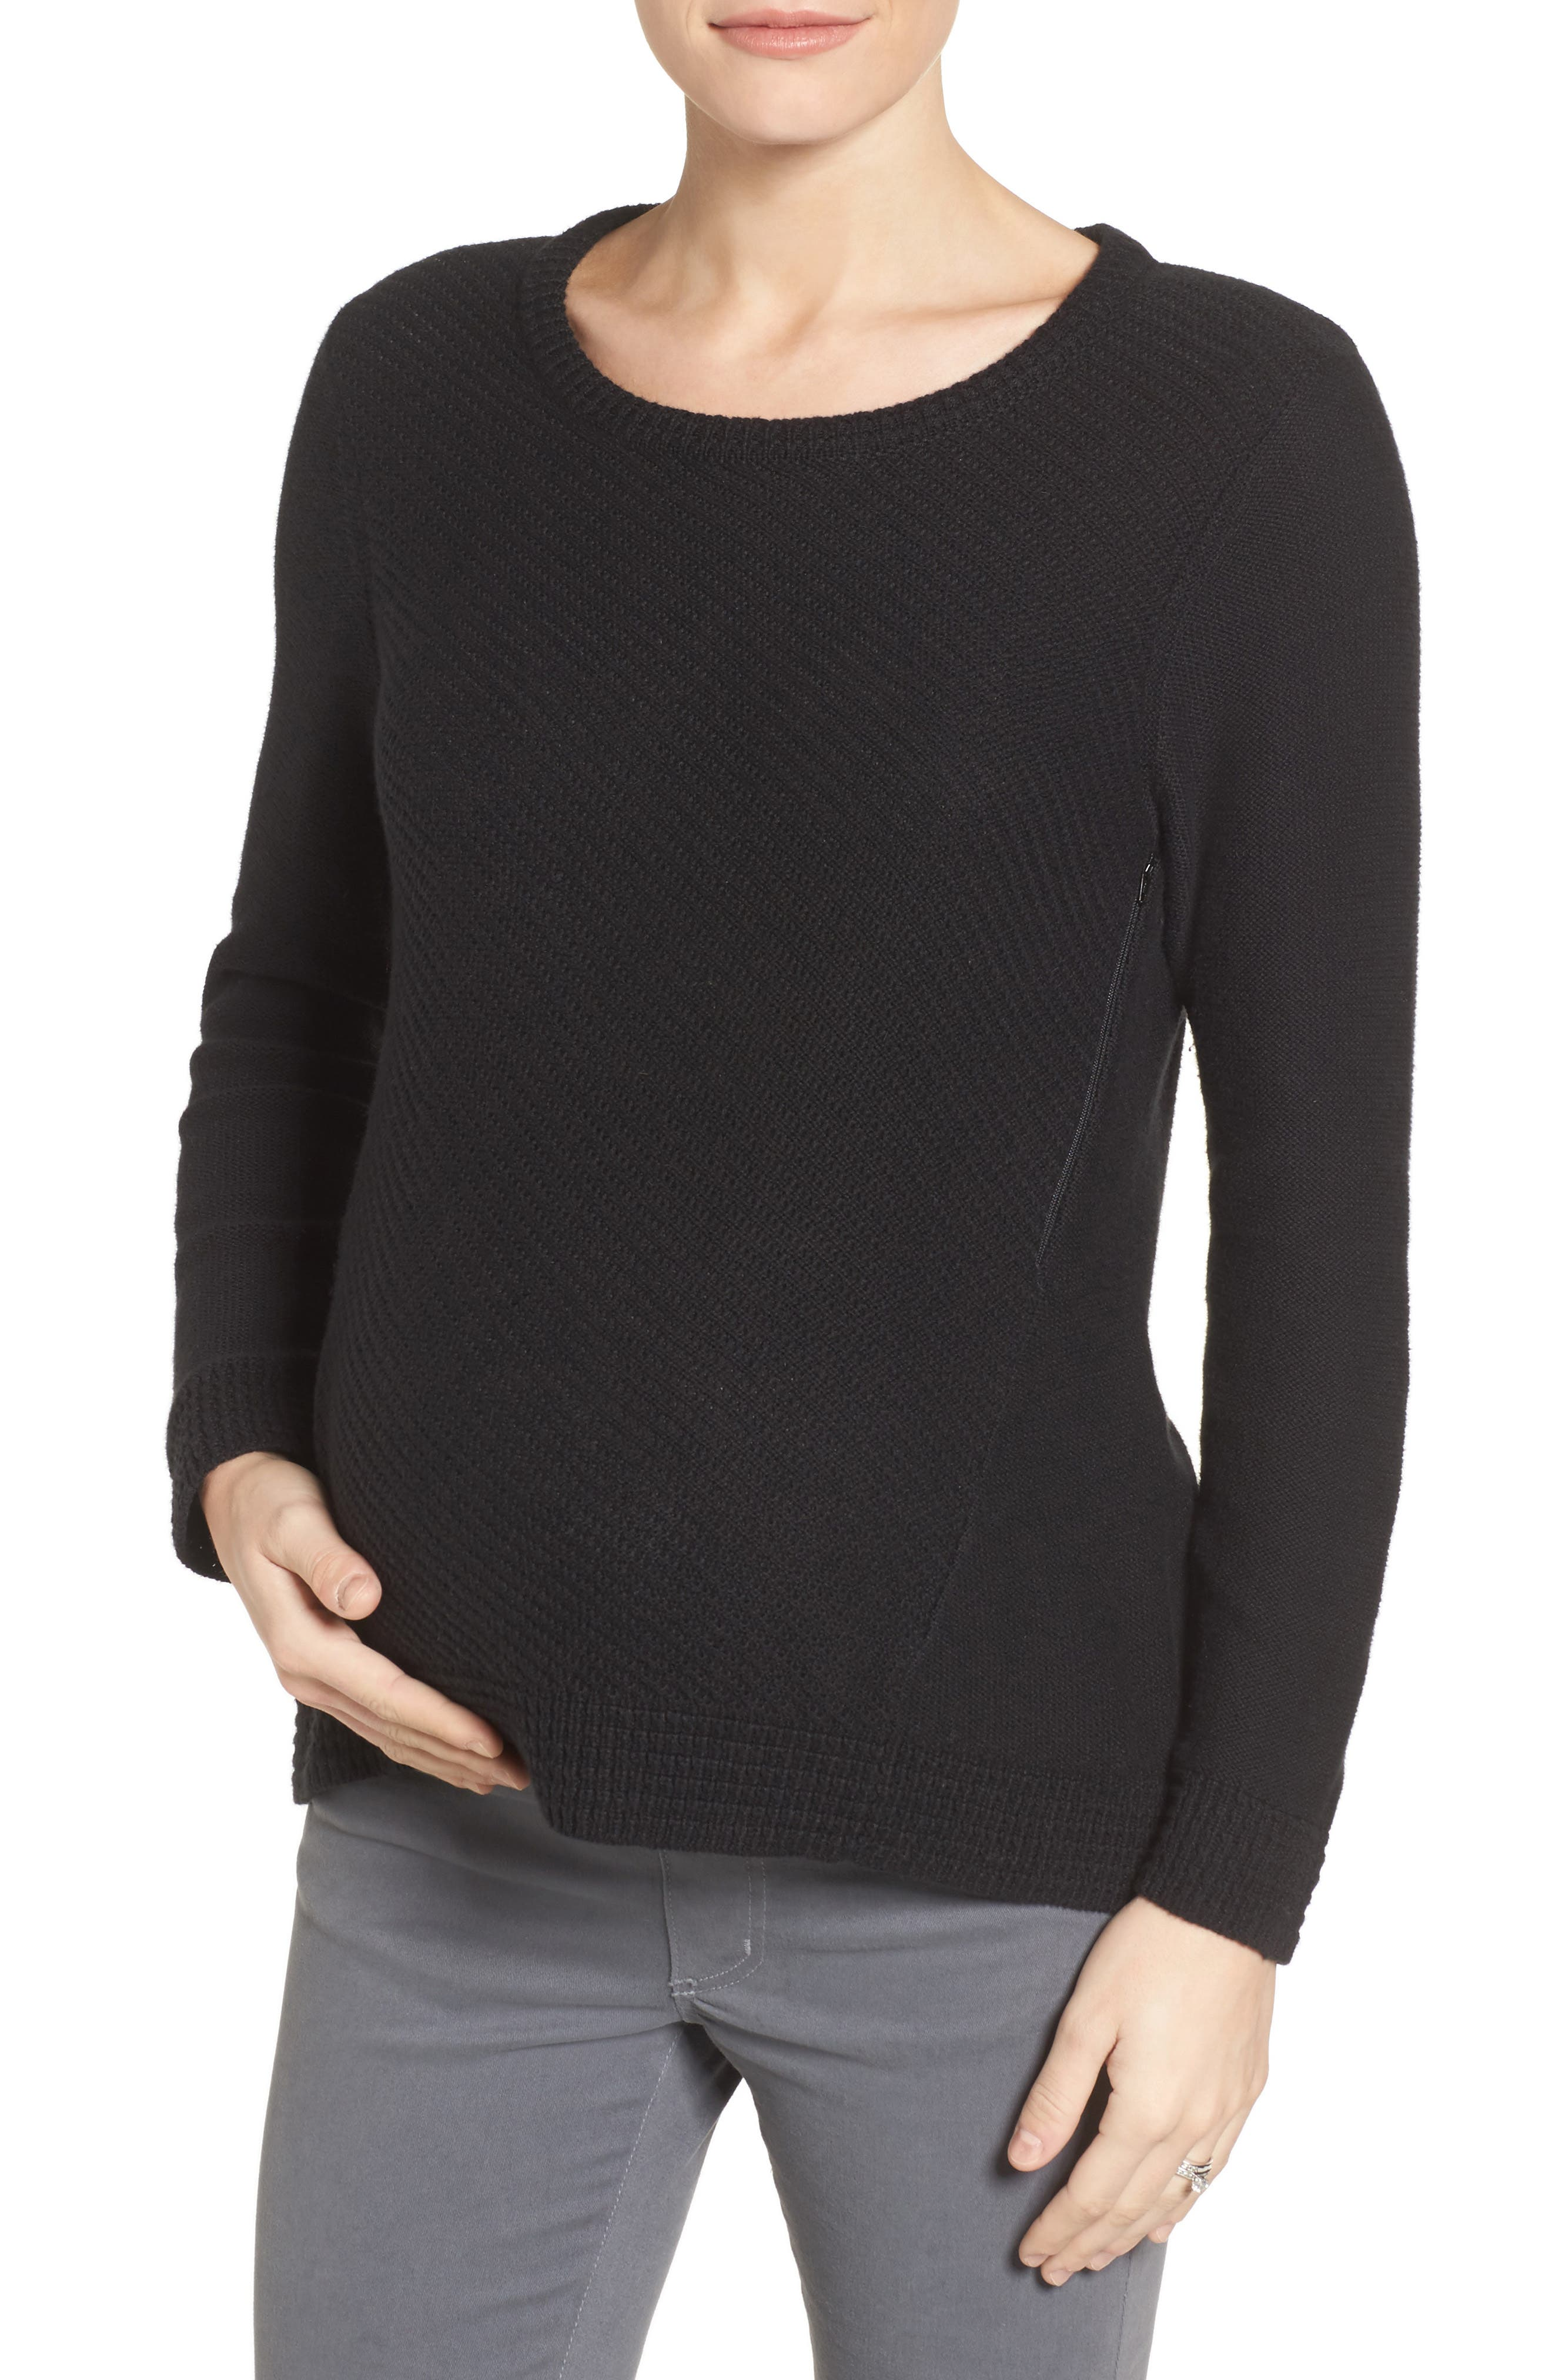 Wiley Maternity/Nursing Sweatshirt,                             Alternate thumbnail 2, color,                             BLACK